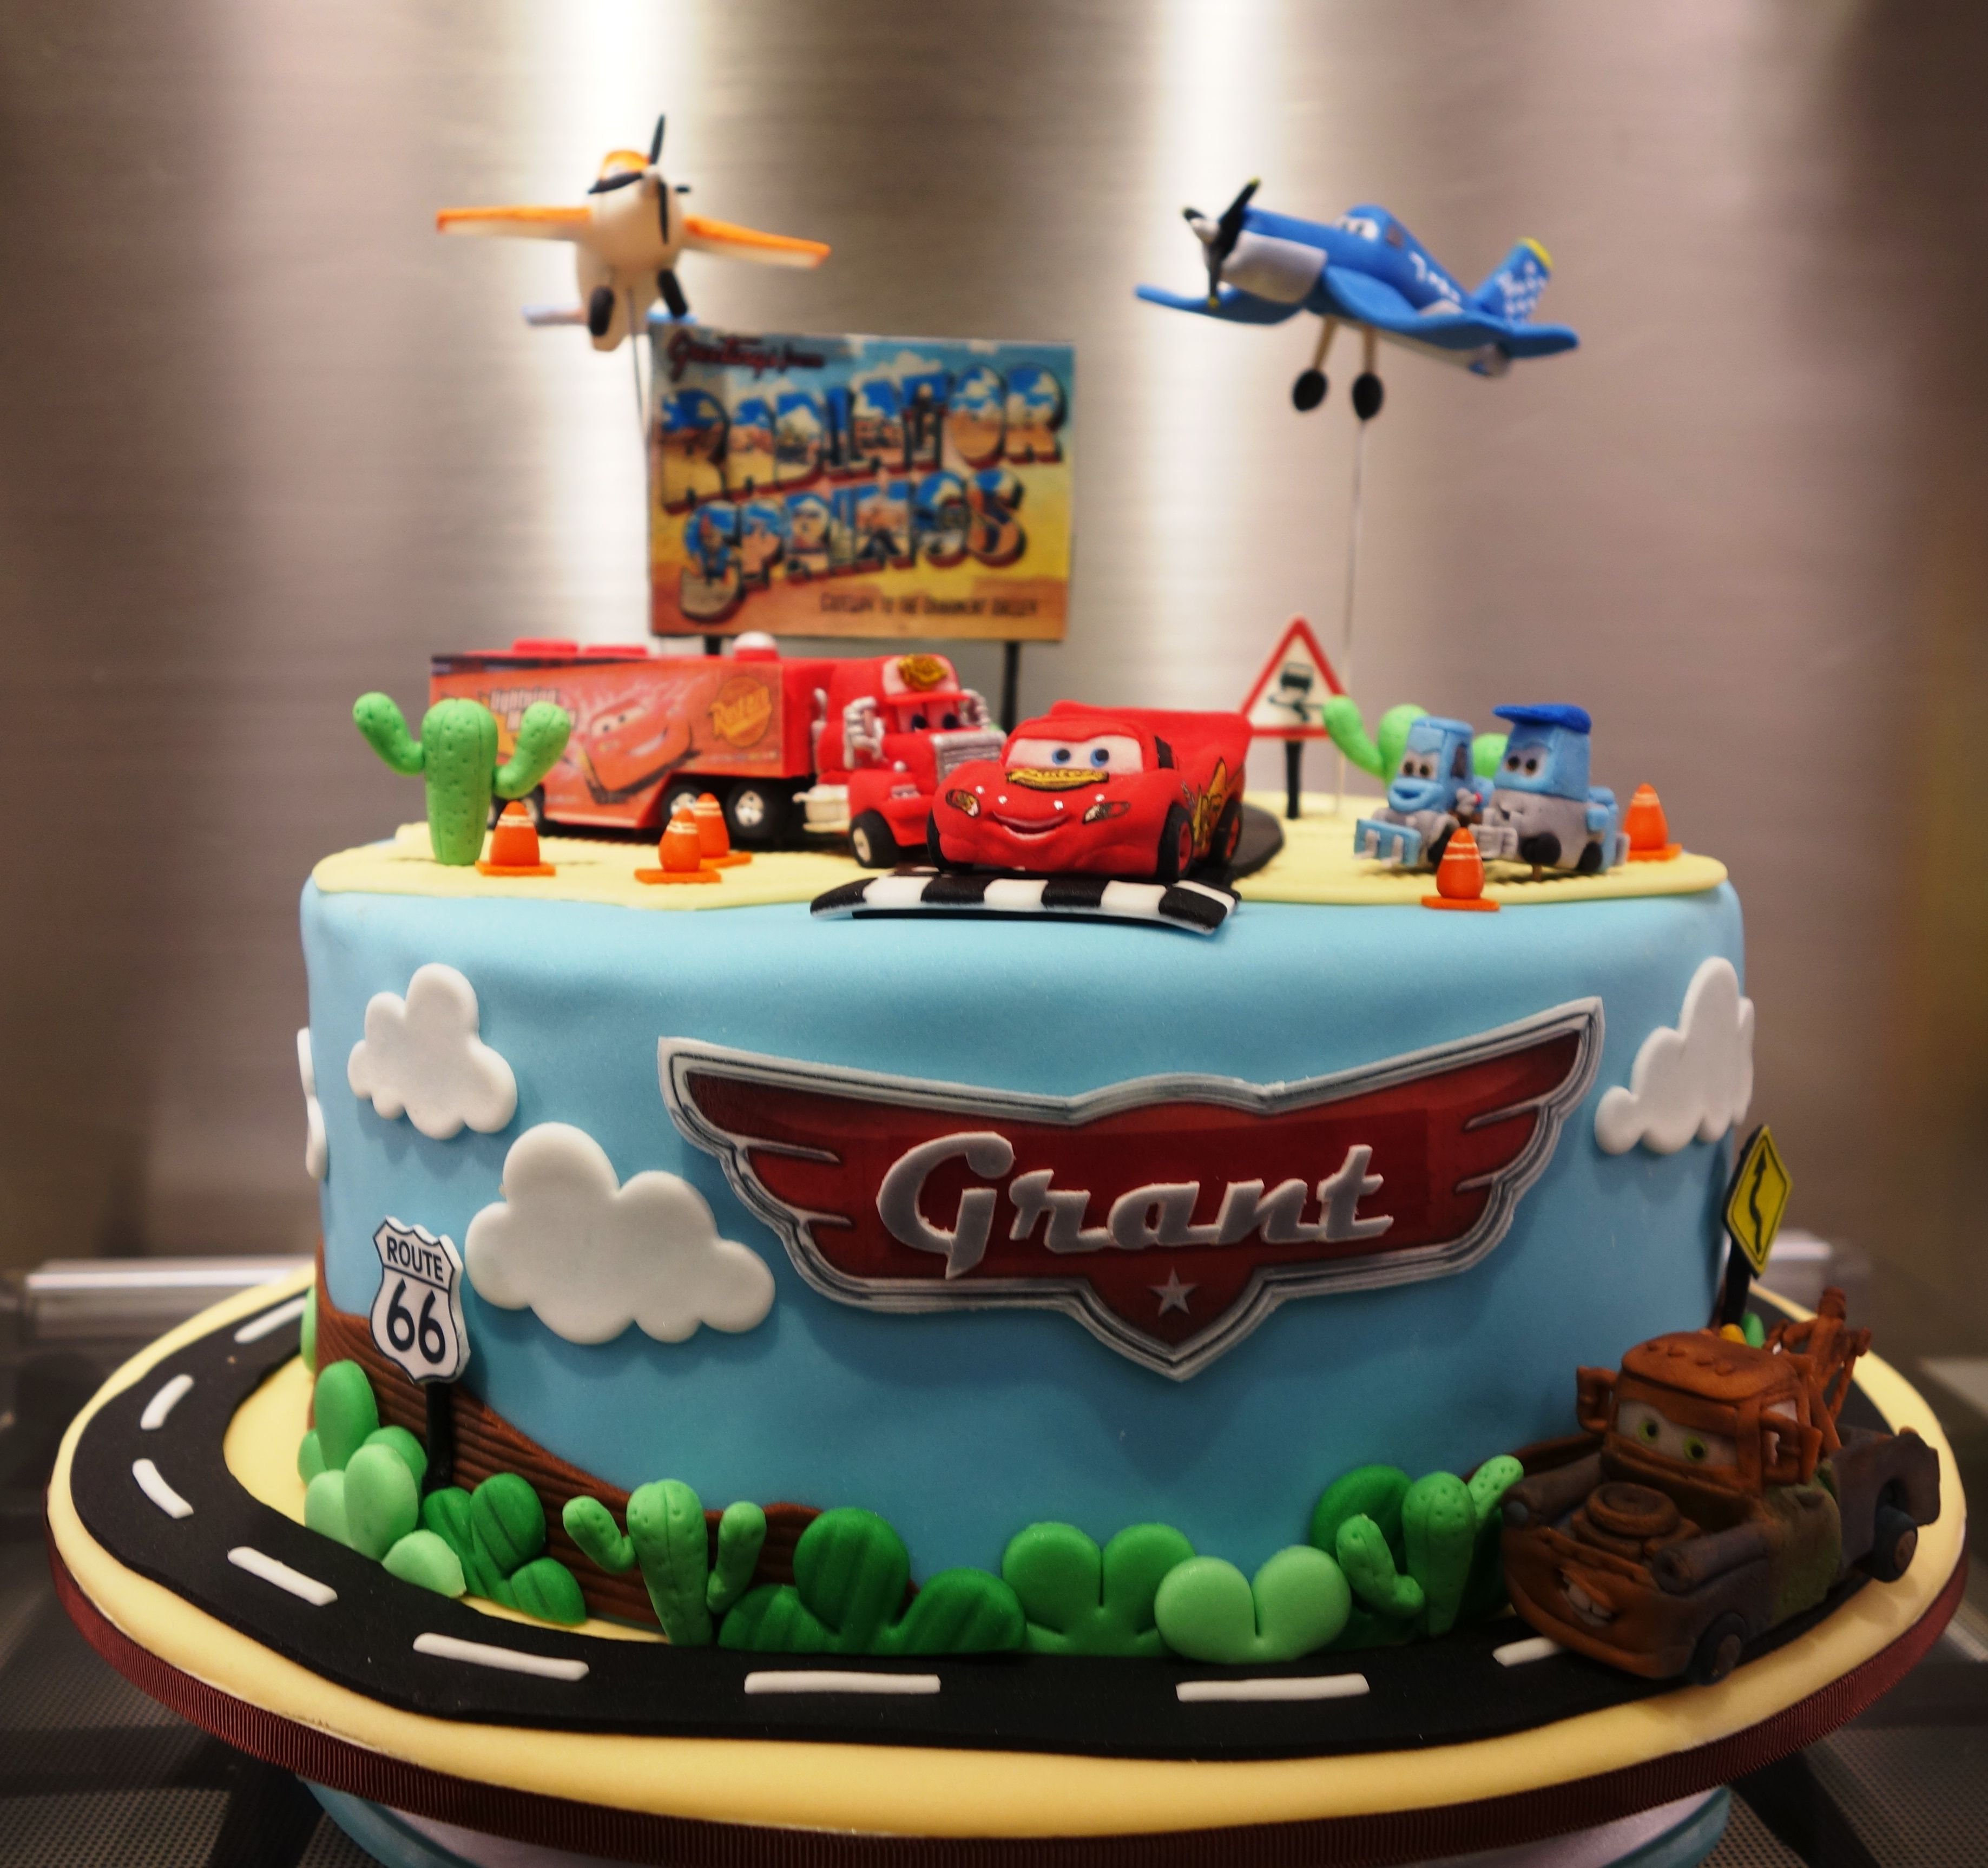 Fabulous Disney Cars And Planes Cake Planes Cake Crazy Cakes Planes Birthday Cards Printable Trancafe Filternl